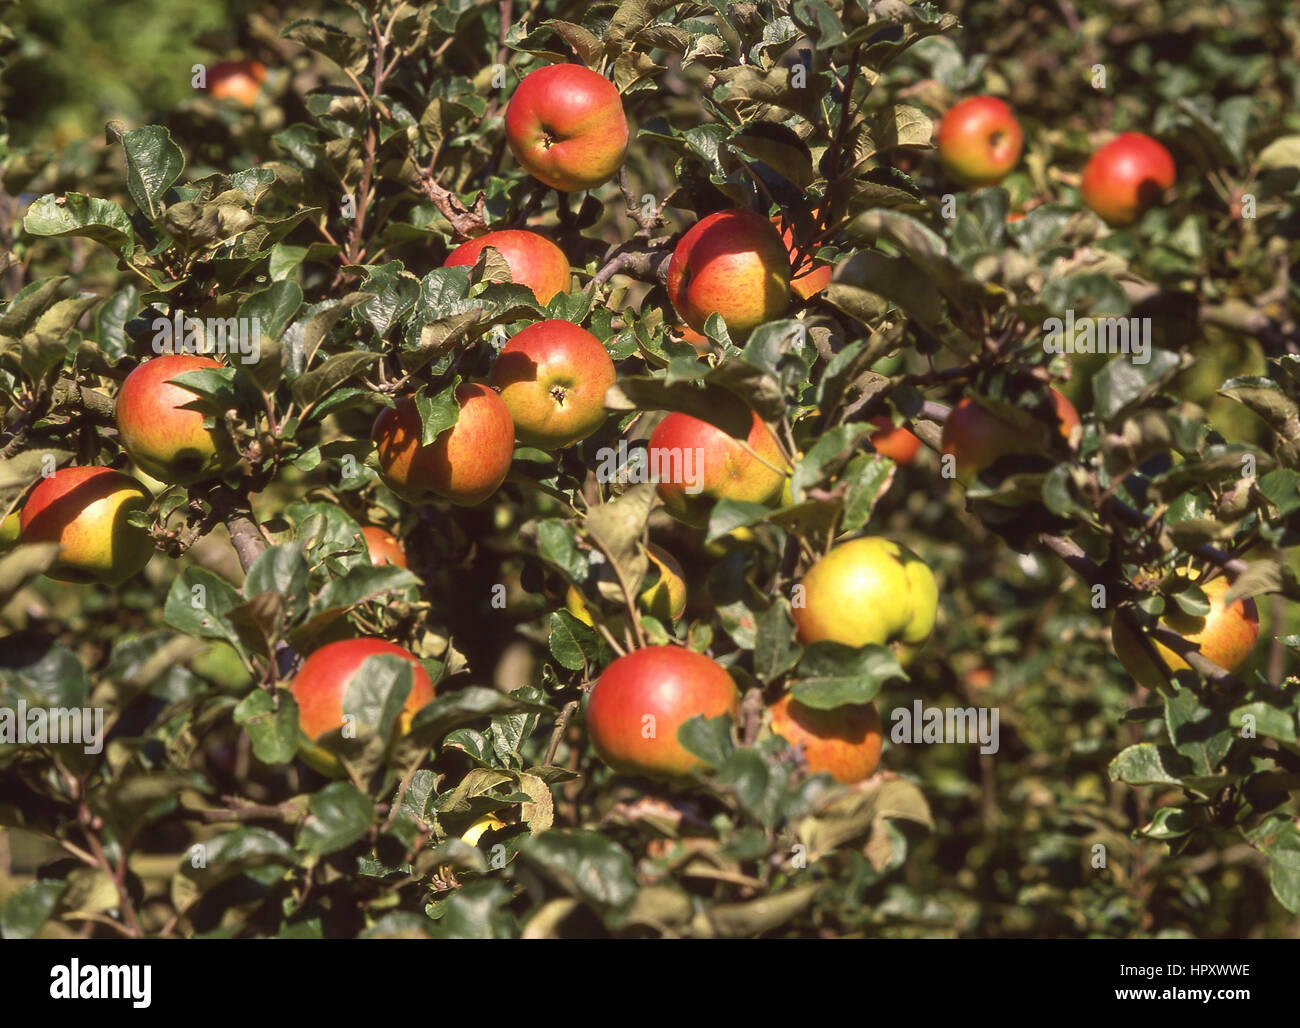 Ripe apples on tree in orchard, Kent, England, United Kingdom - Stock Image